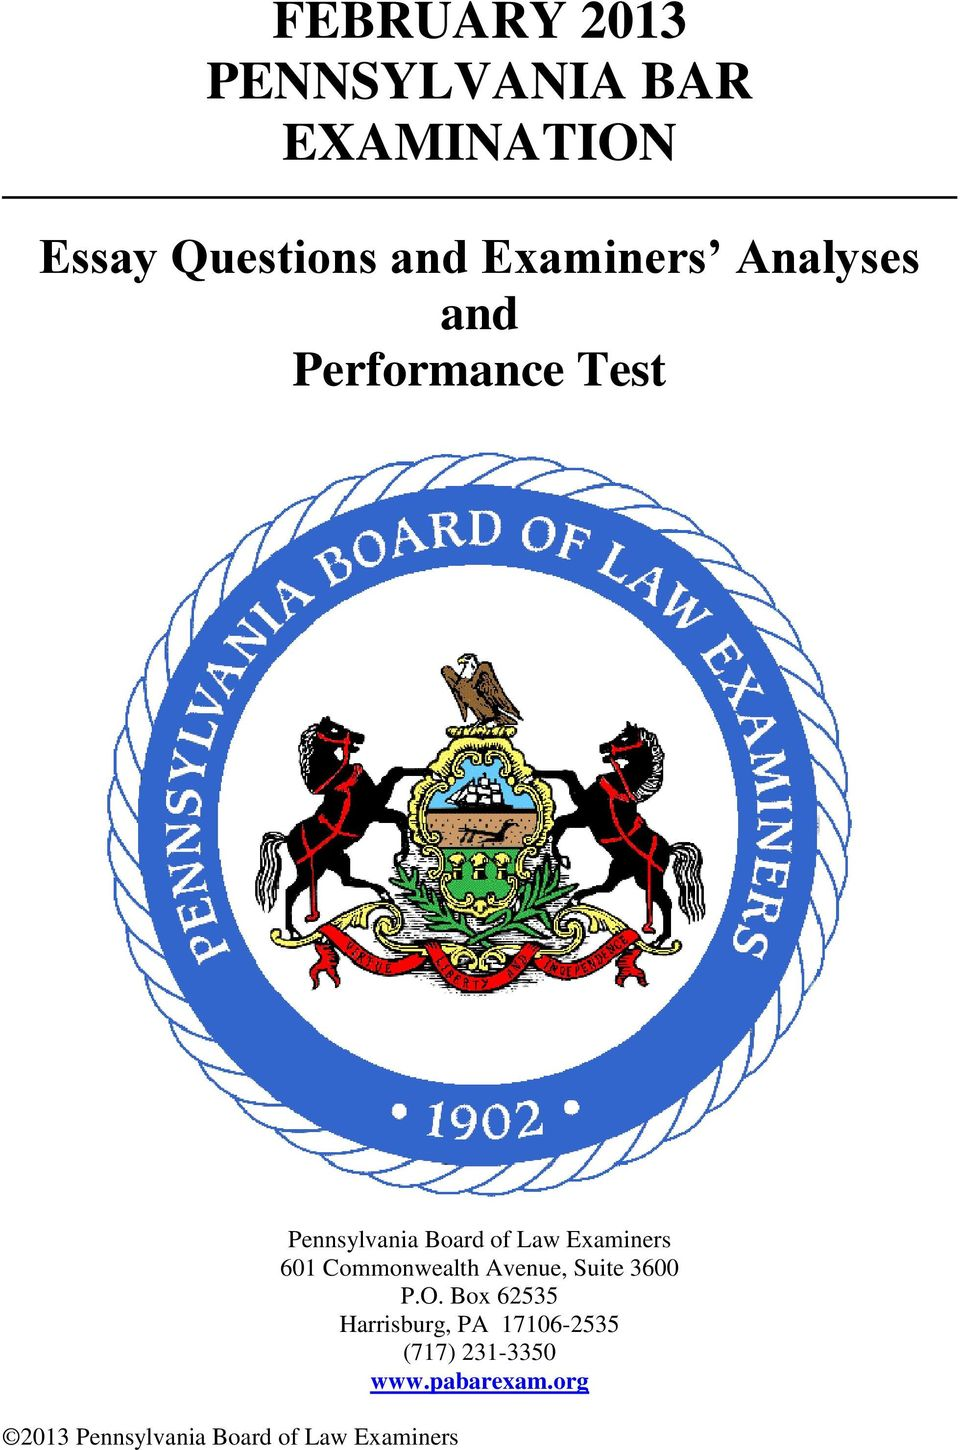 Pennsylvania Board of Law Examiners 601 Commonwealth Avenue, Suite 3600